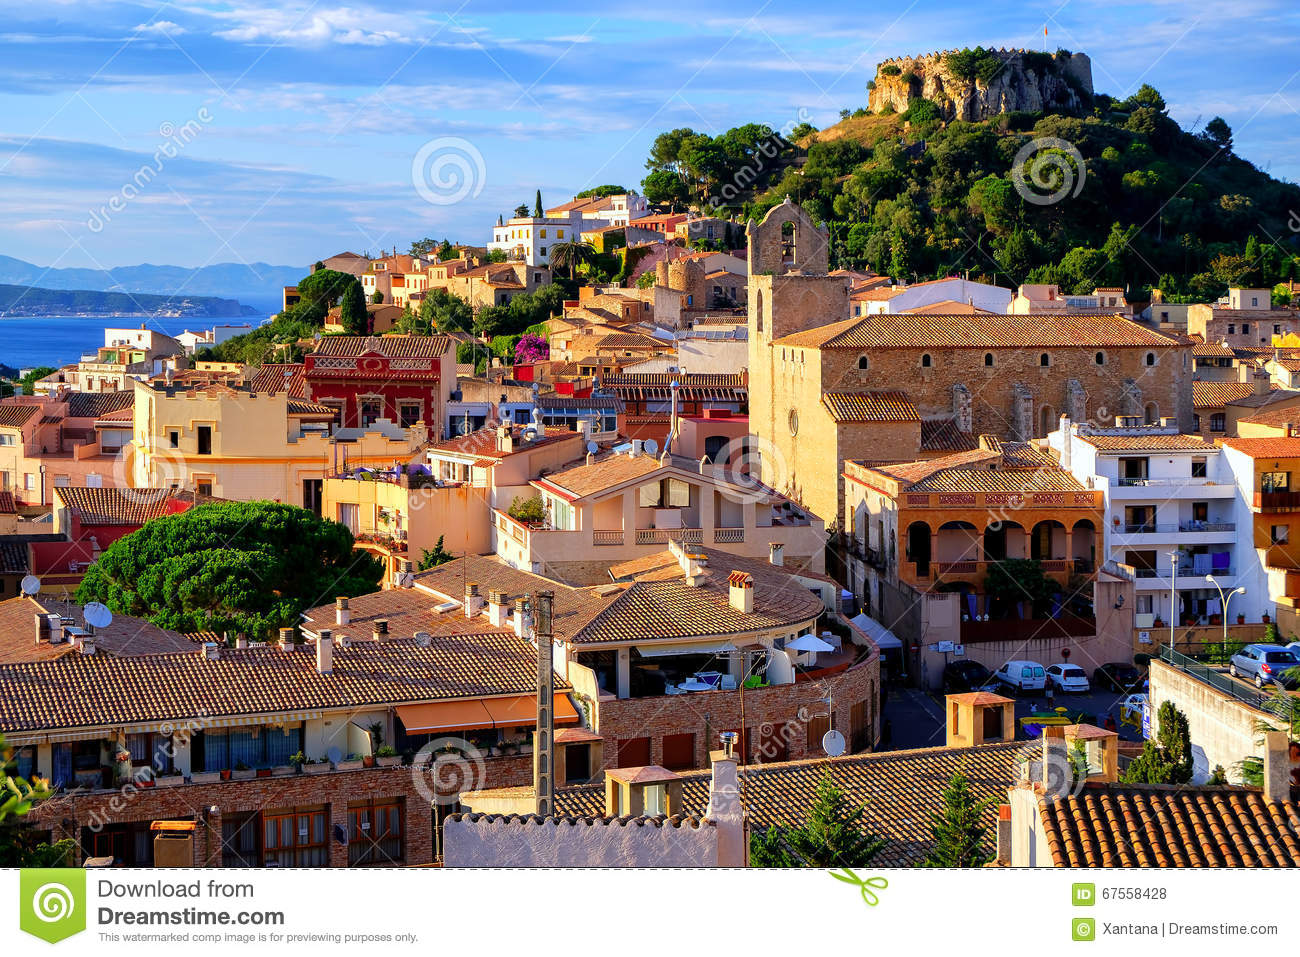 ch teau m di val dans la ville de begur catalogne espagne photo stock image 67558428. Black Bedroom Furniture Sets. Home Design Ideas